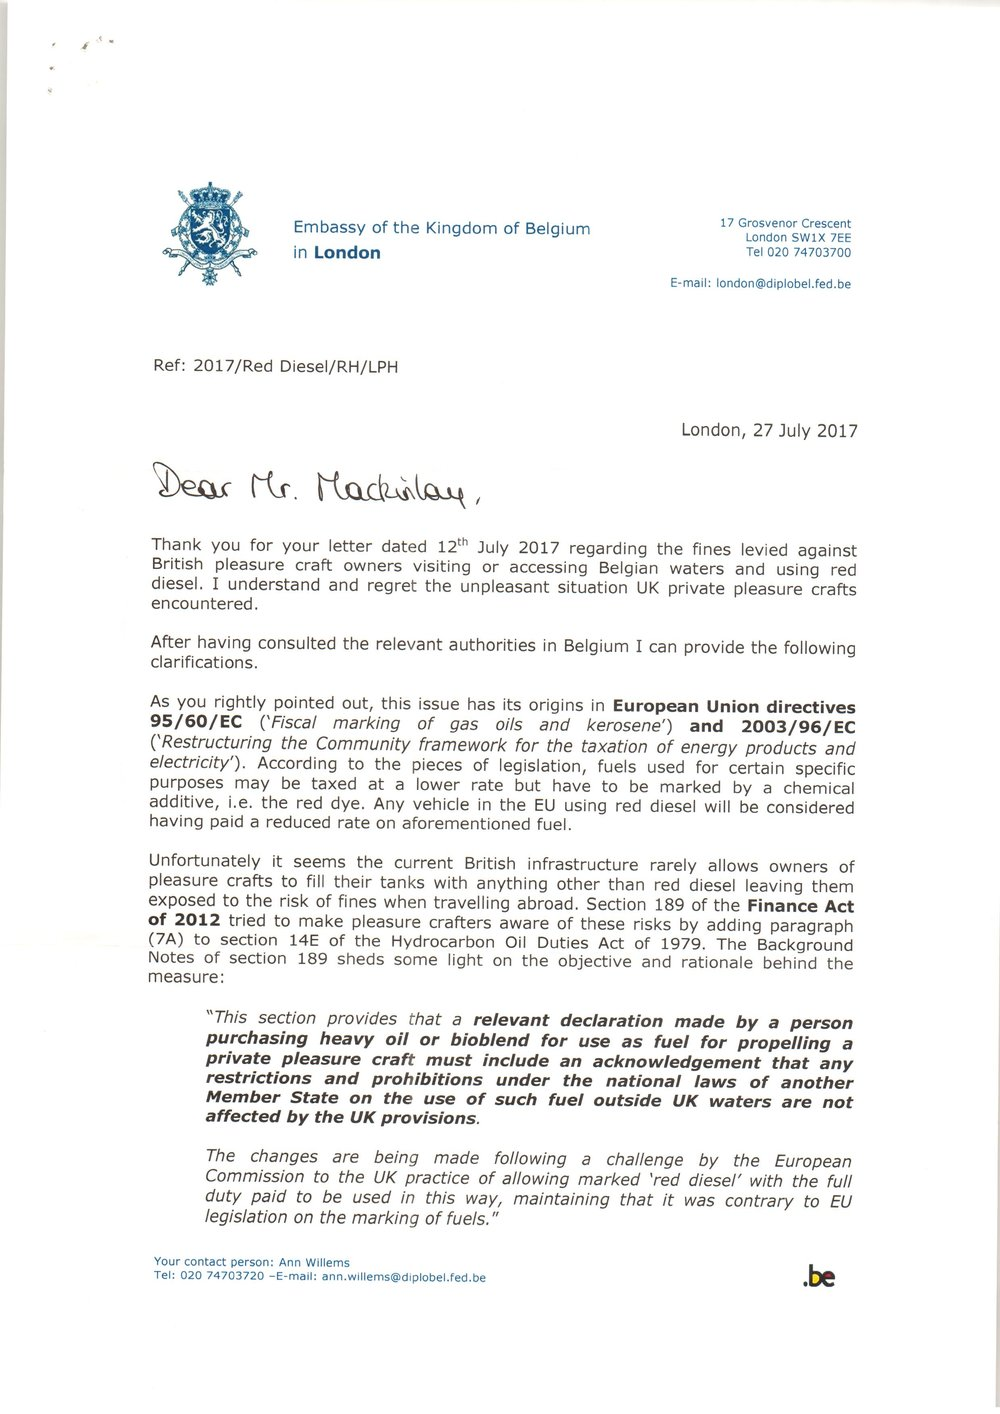 Belgian Ambassador's reply of 27 July17.jpg